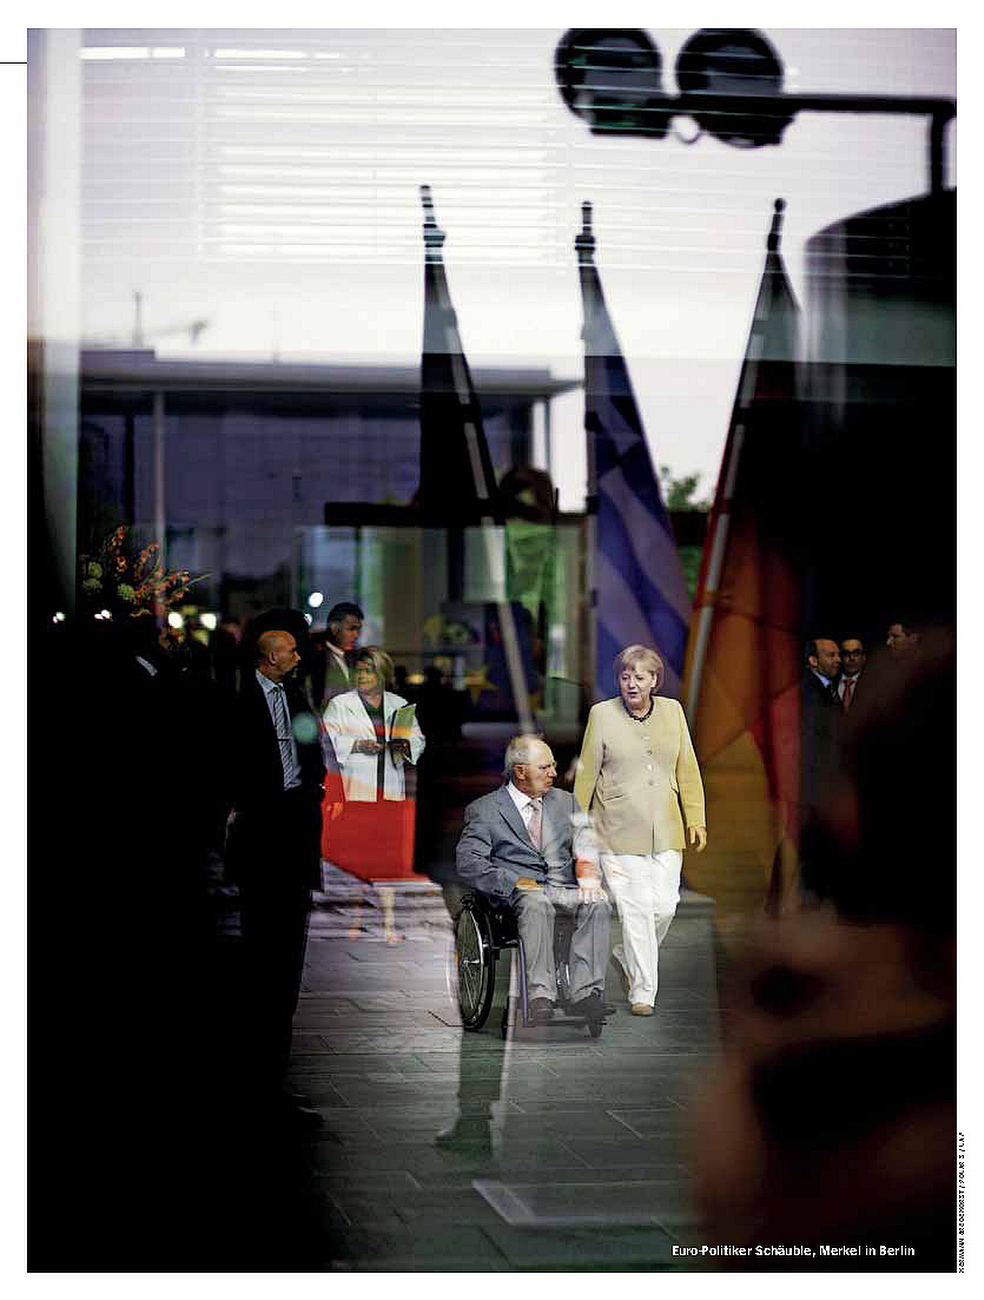 SPIEGEL, Germany, 26.08.2013, German Chancellor Angela Merkel and German Minister of Finance Wolfgang Schaeuble